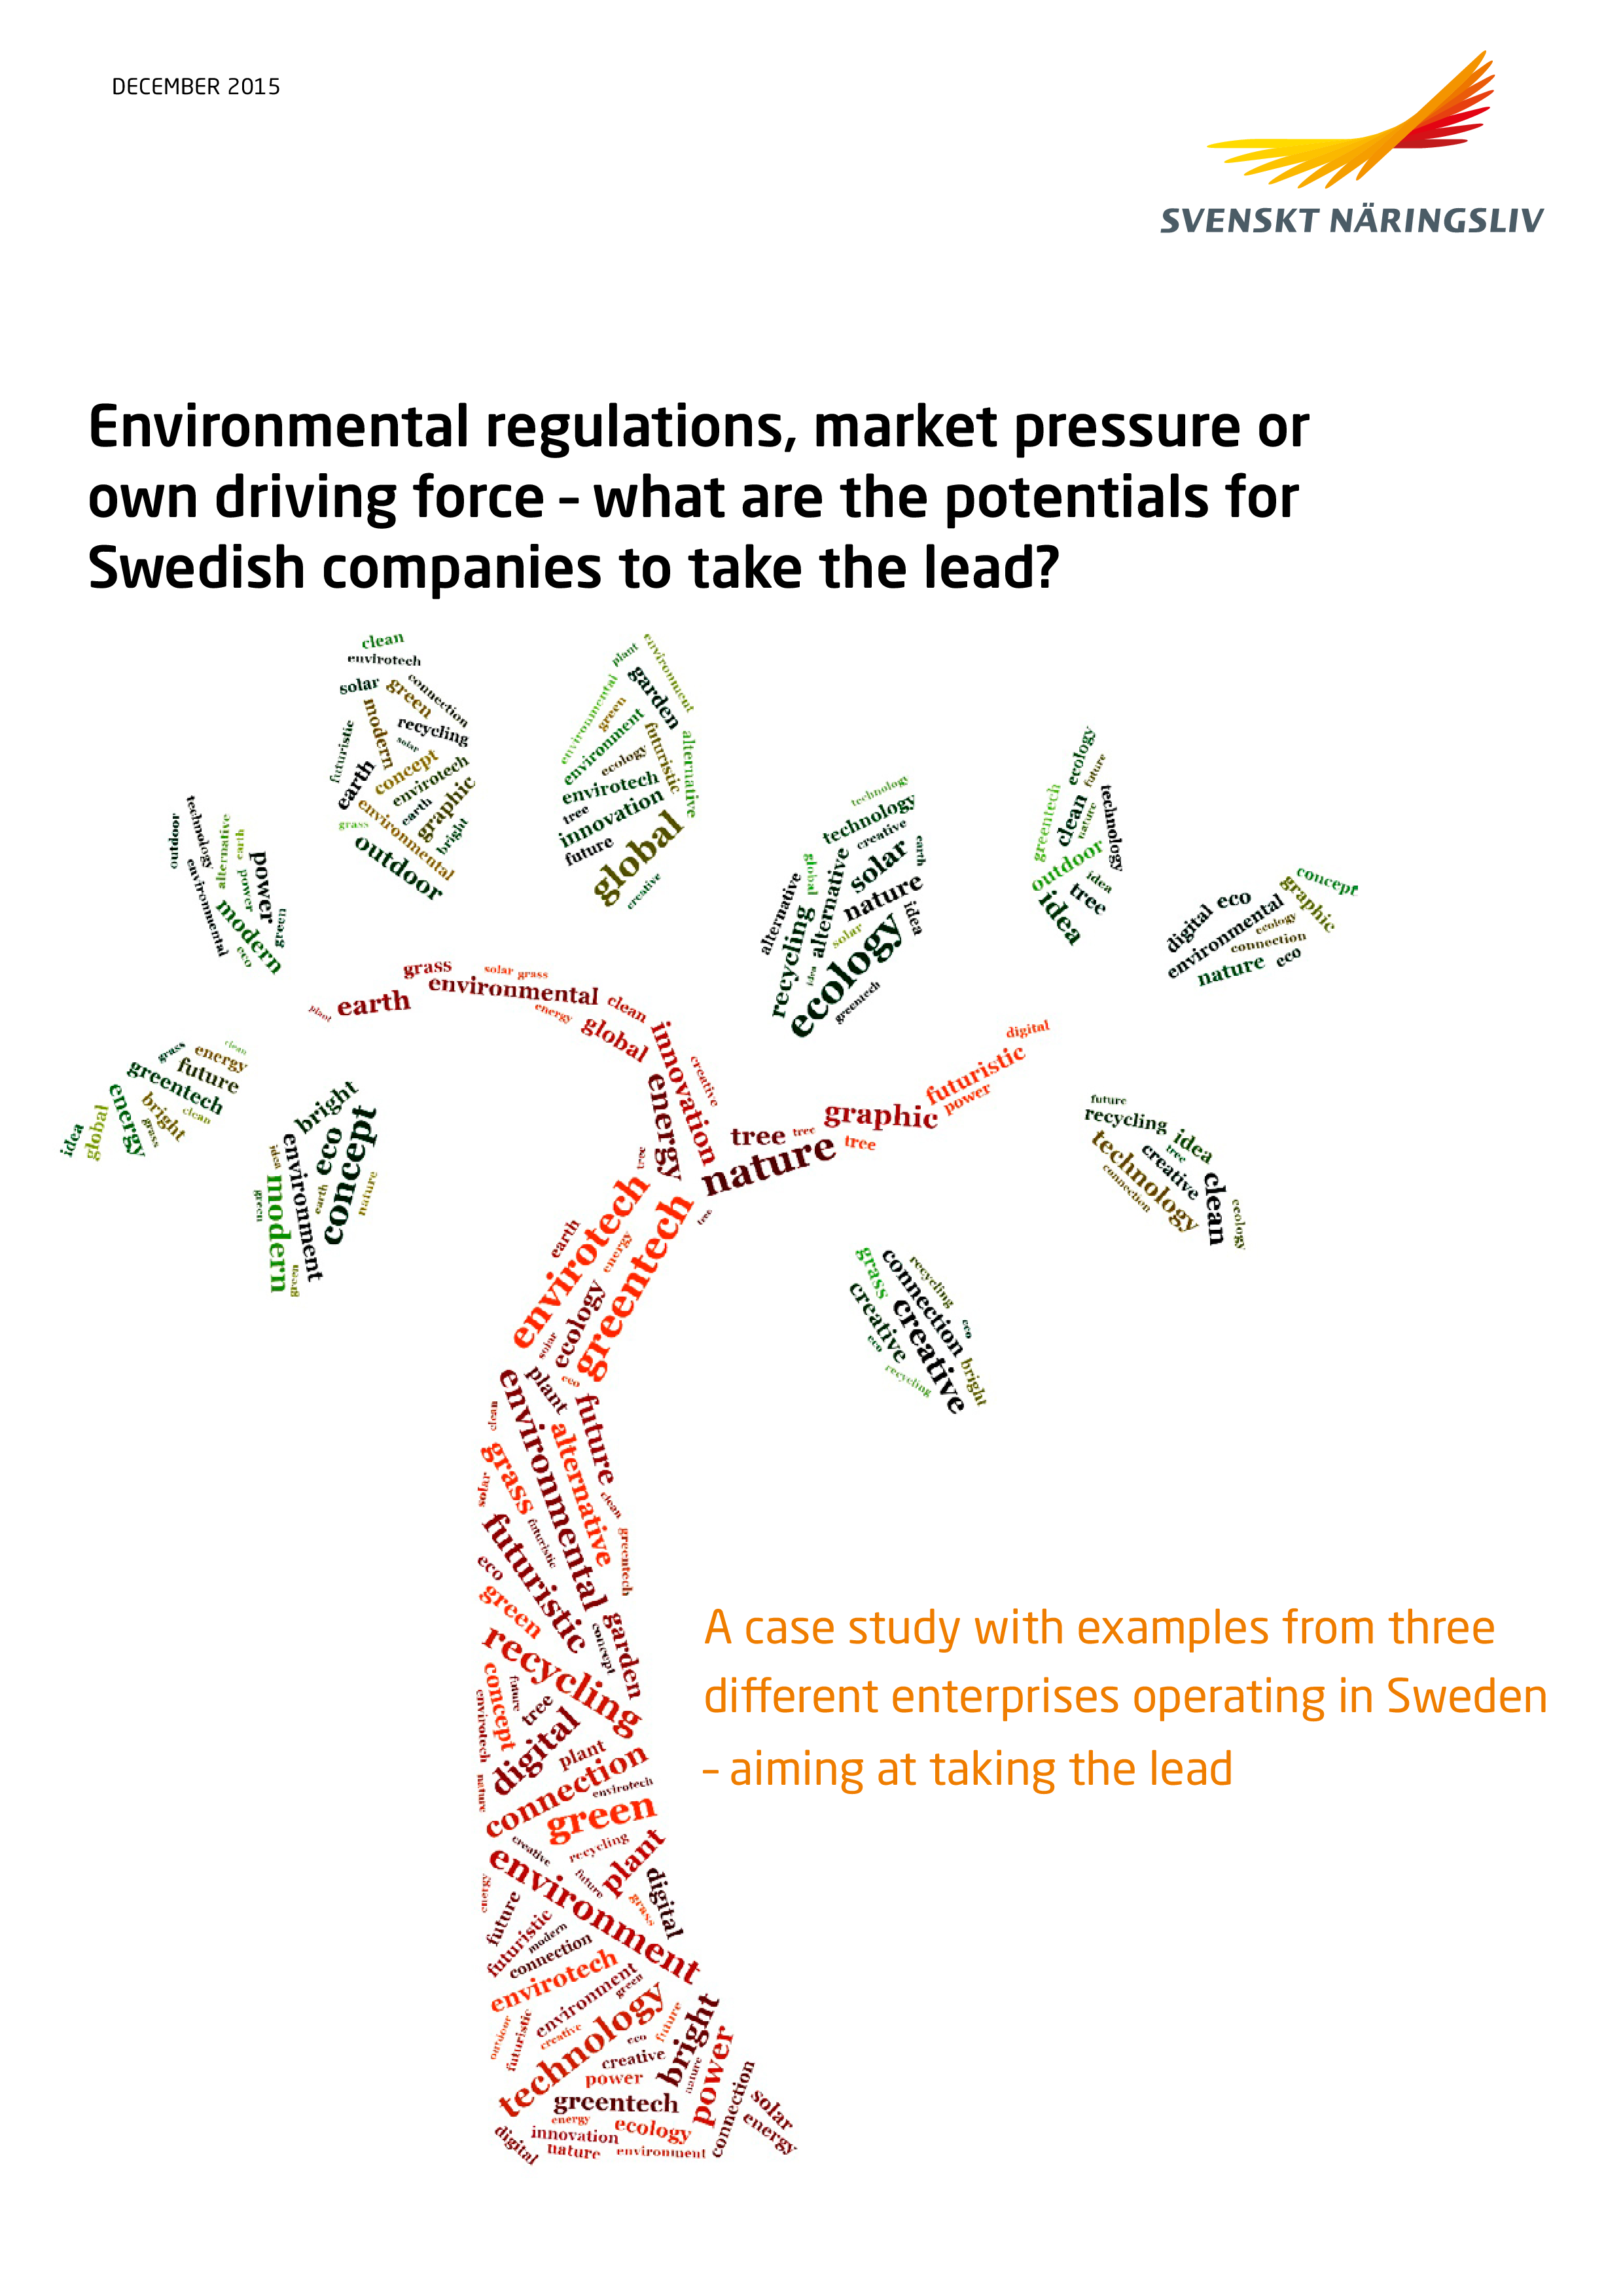 Environmental regulations, market pressure or own driving force - what are the potentials for Swedish companies to take the lead?